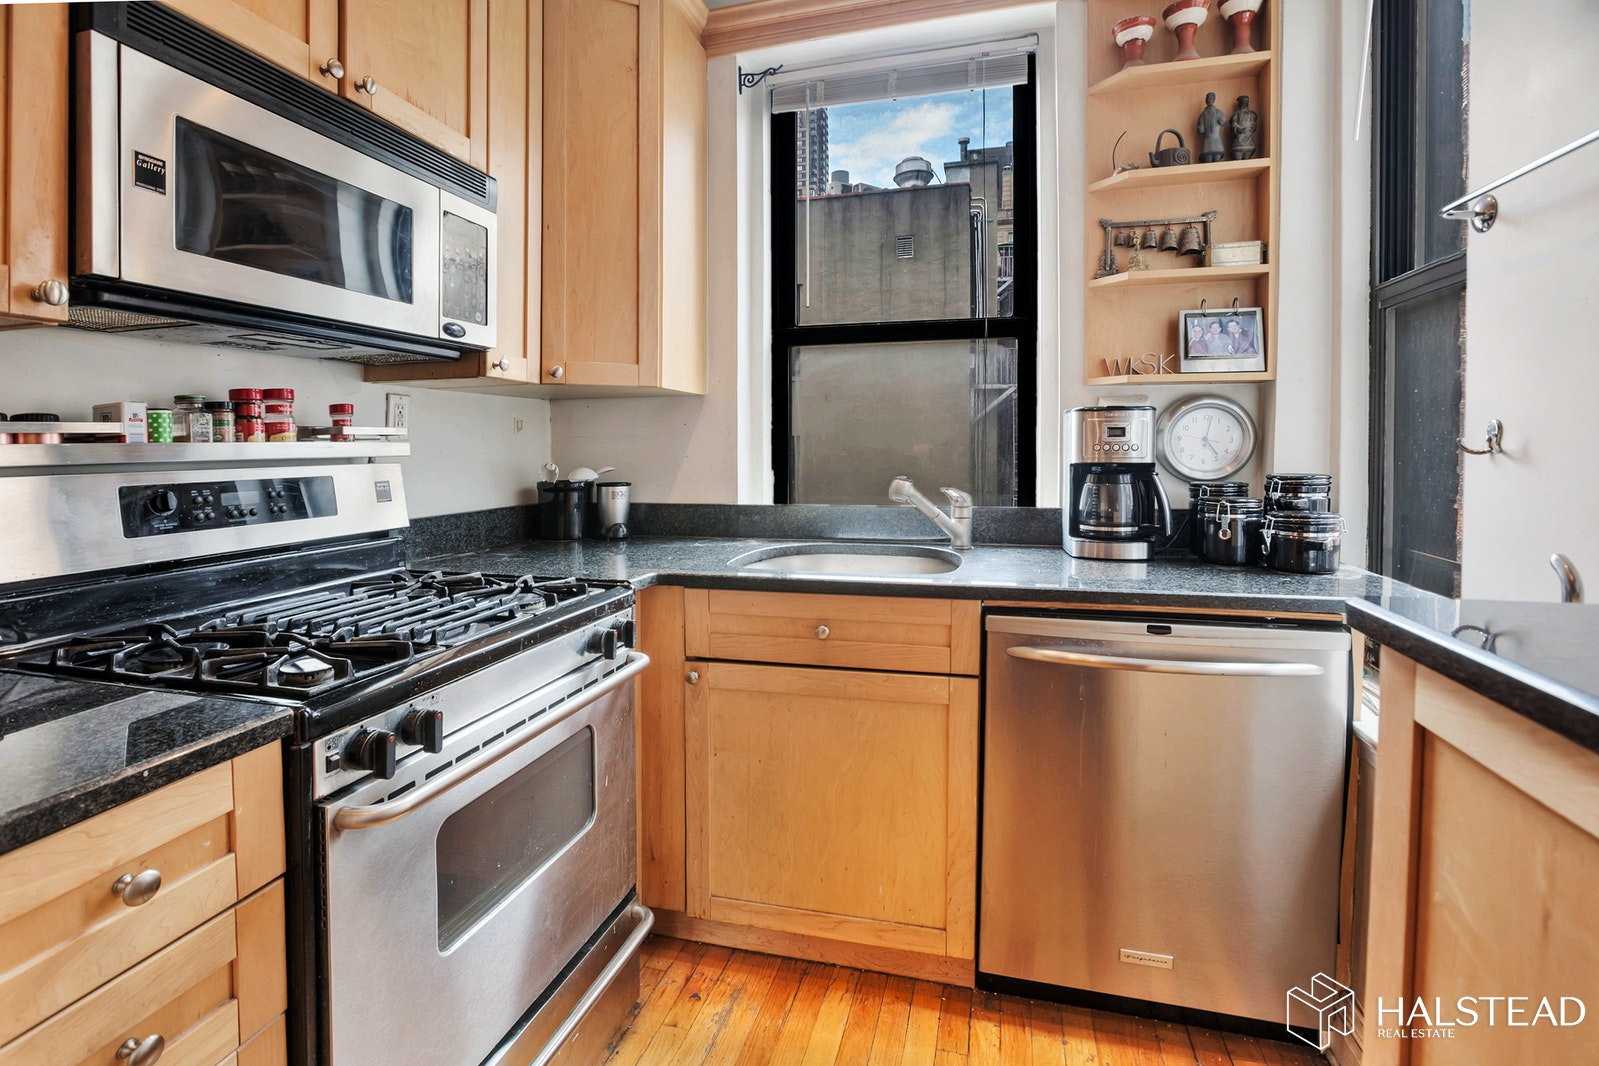 357 WEST 55TH STREET 5/6A, Midtown West, $4,500, Web #: 20246625